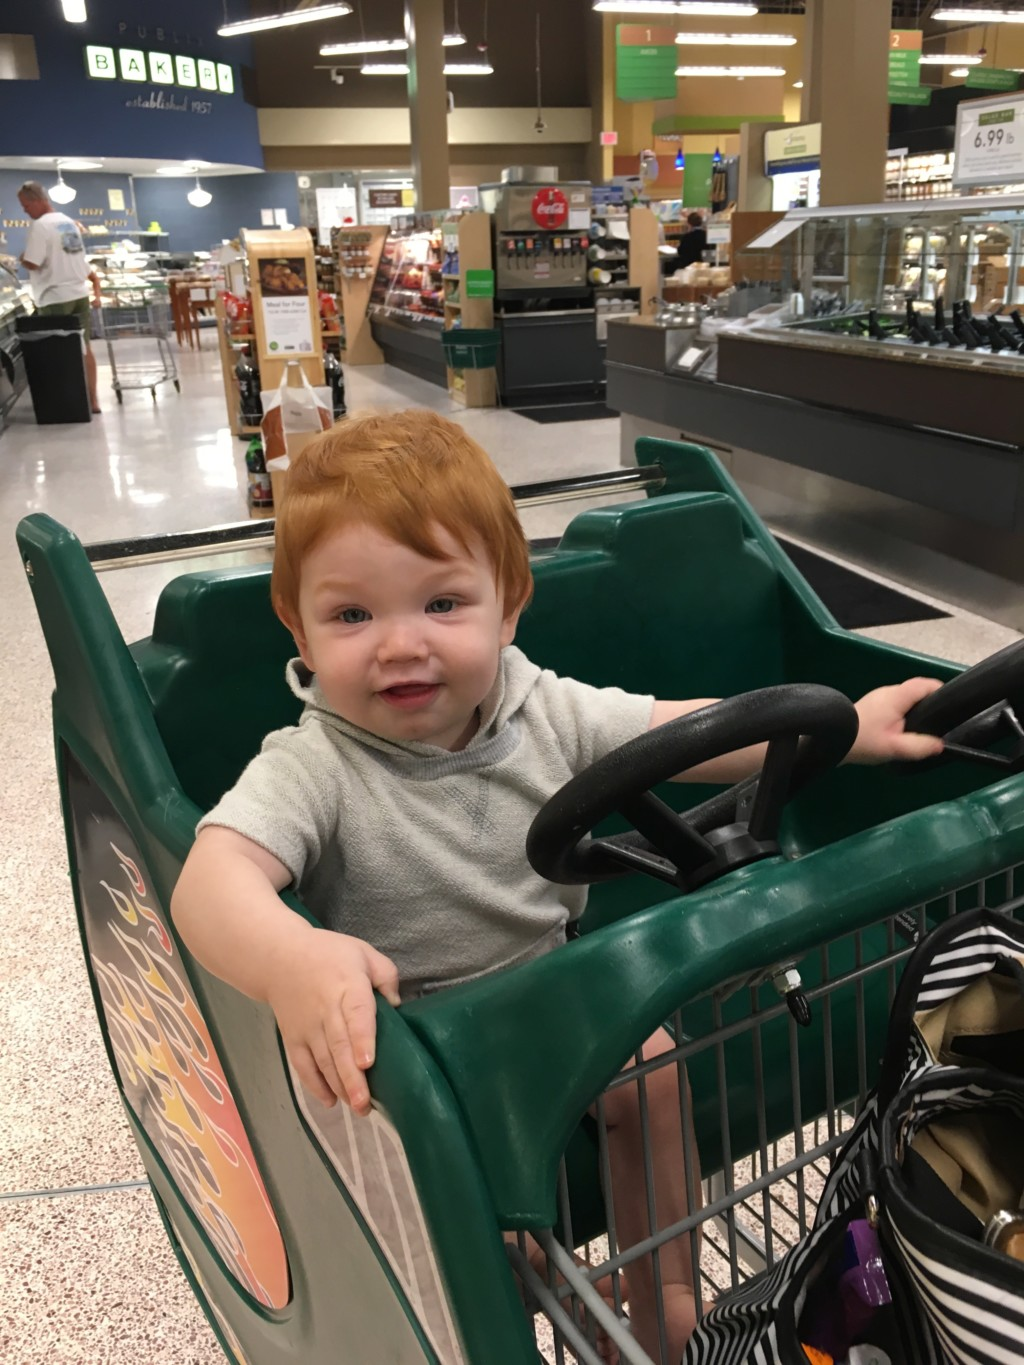 Grocery budgeting - distract the toddler so you don't end up with extra items in your cart!